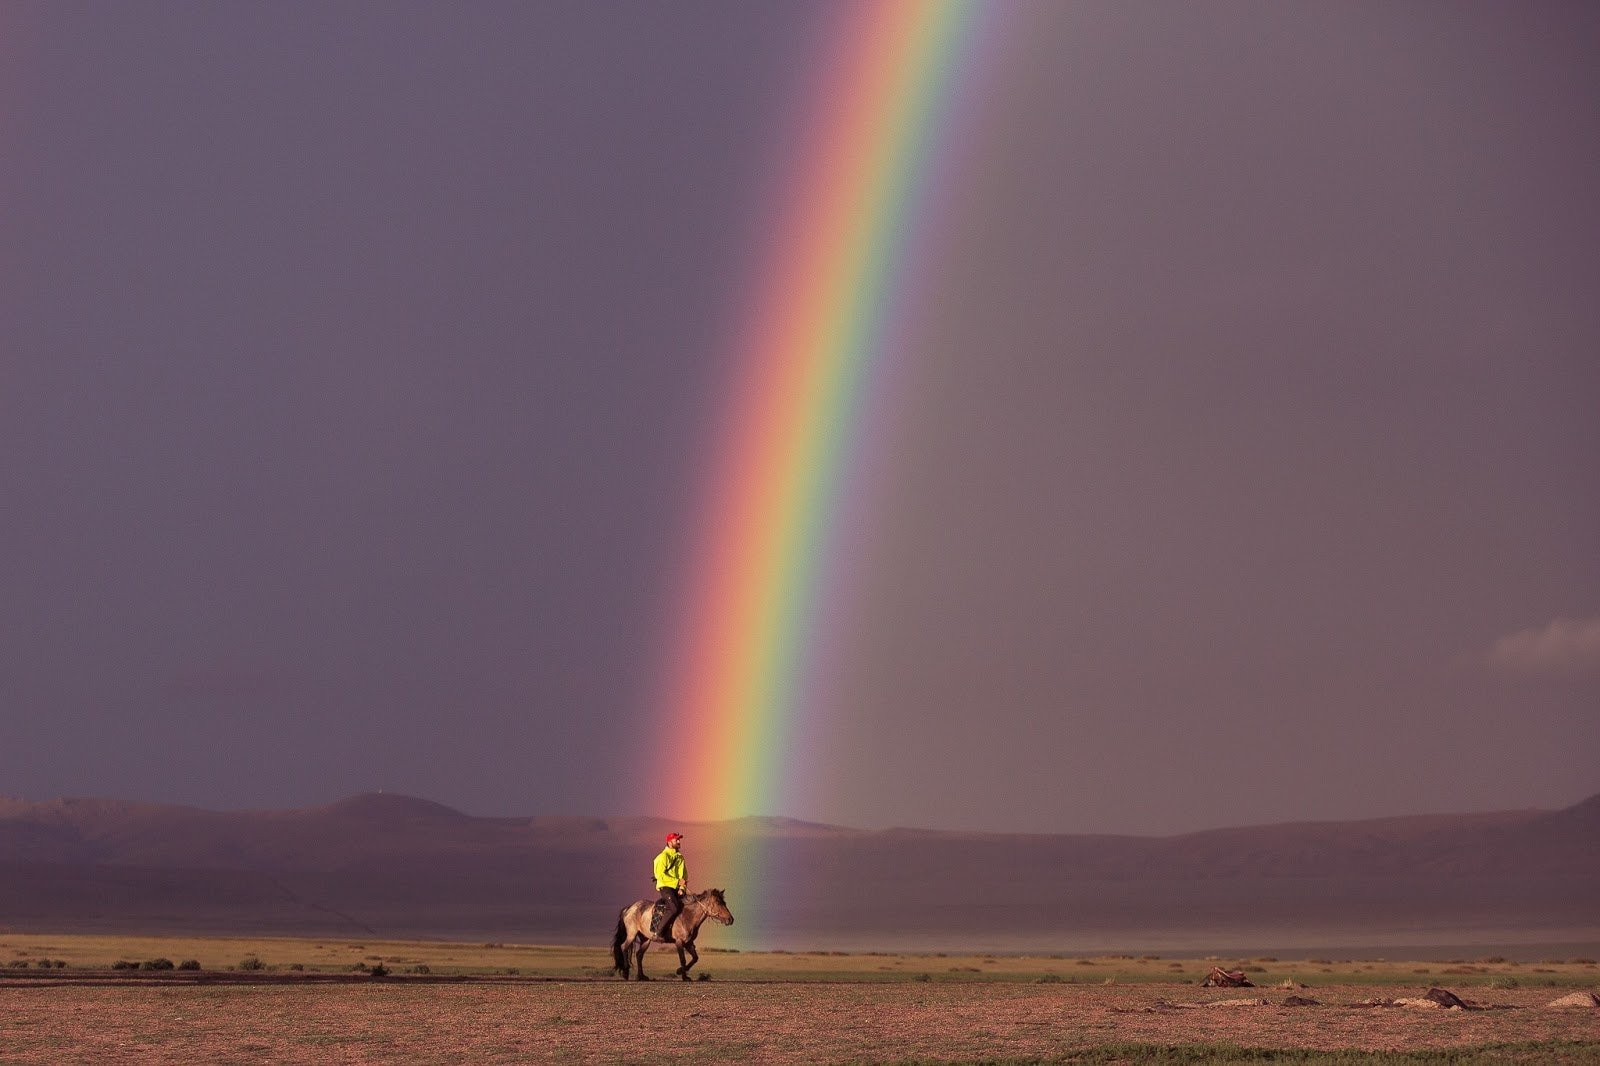 Man riding on a horse on desert with a beautiful rainbow at the back photo by Louise Coghill